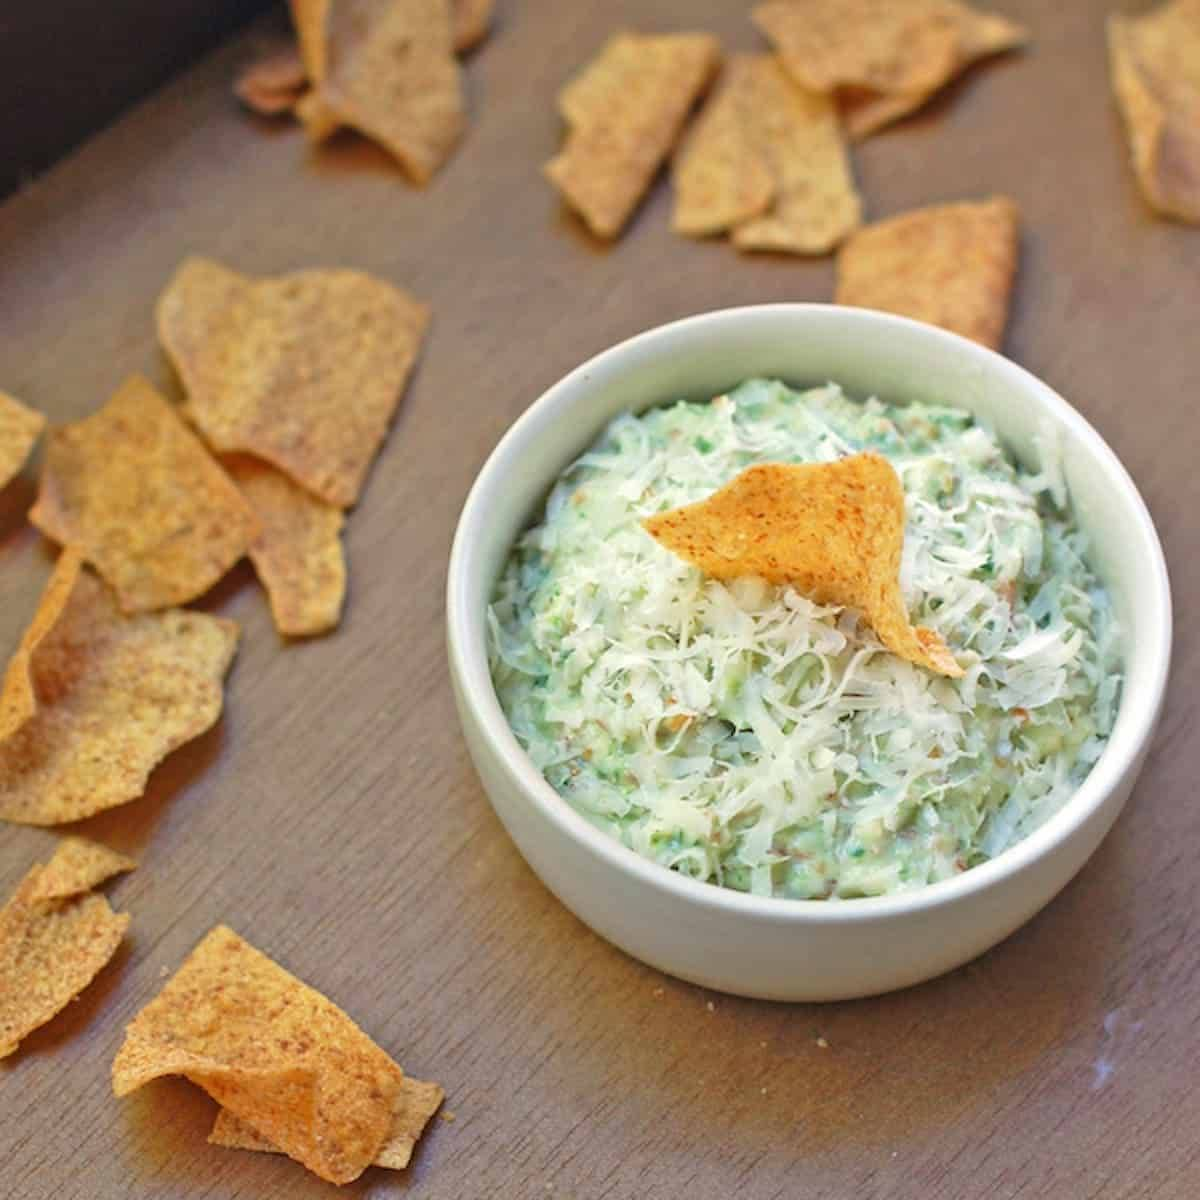 Creamy garlic scape dip with chips.